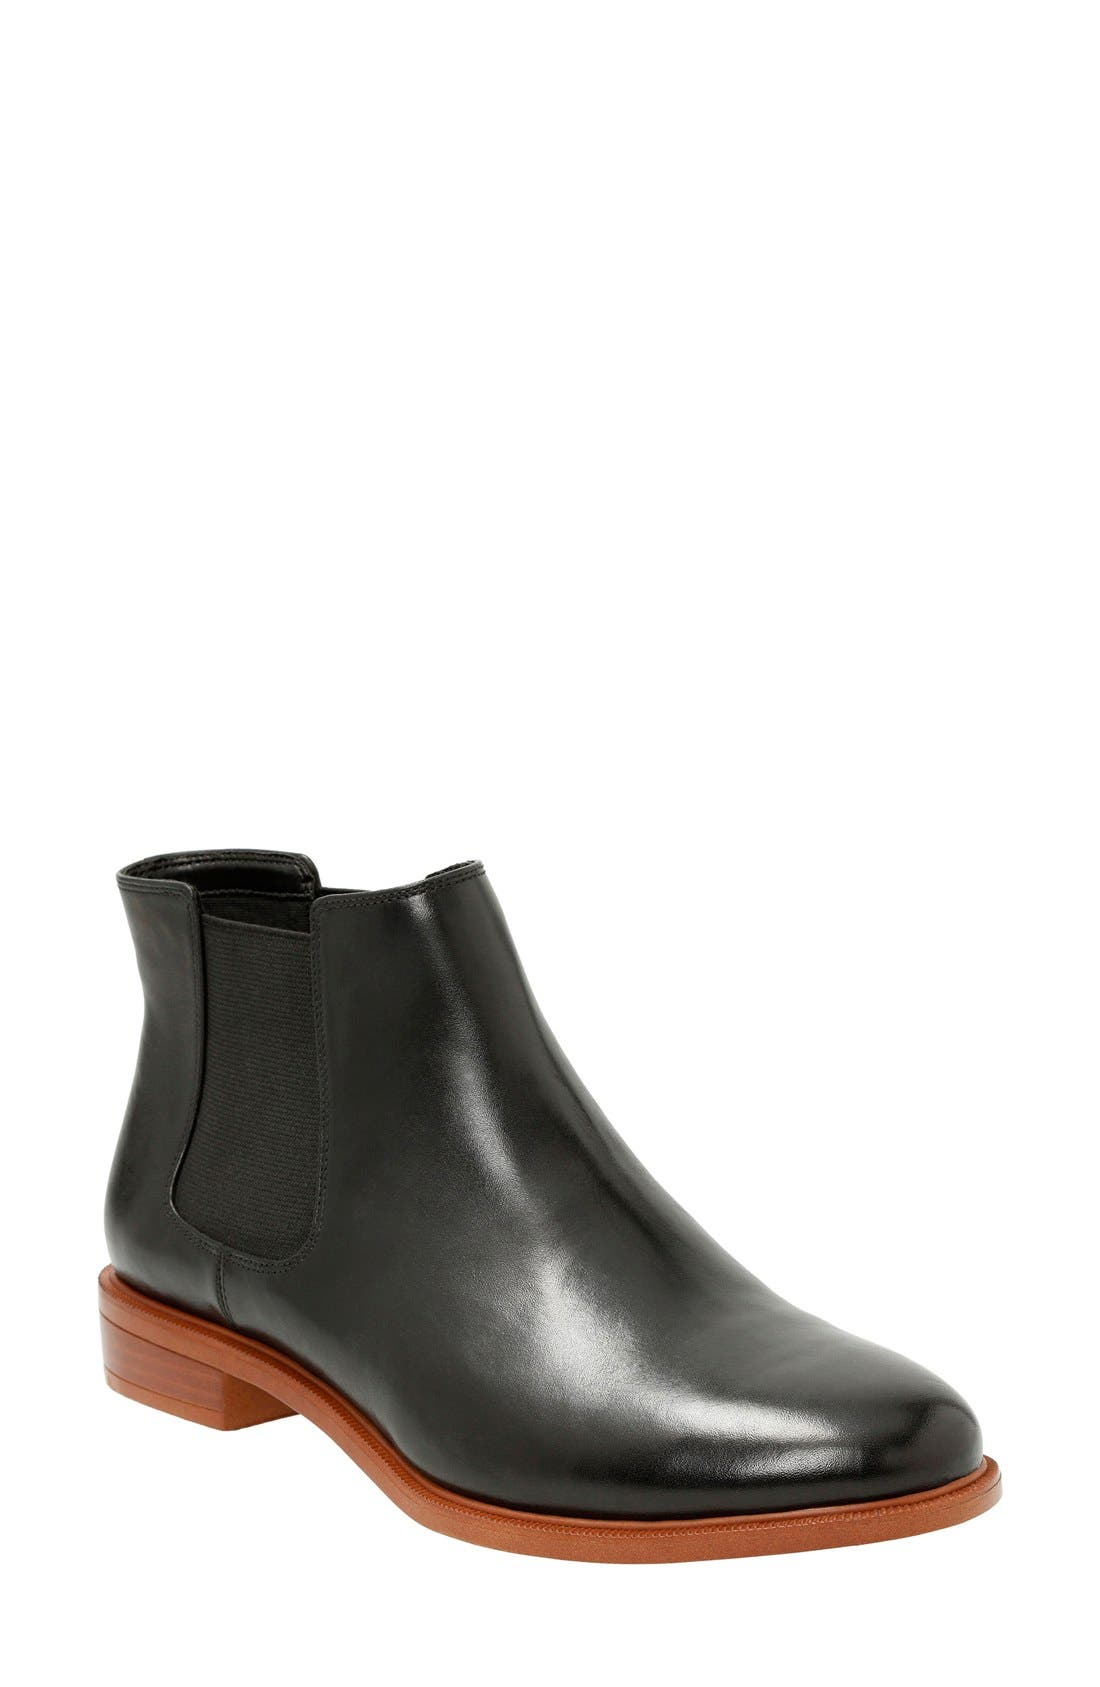 'Taylor Shine' Chelsea Boot,                         Main,                         color, Black Leather